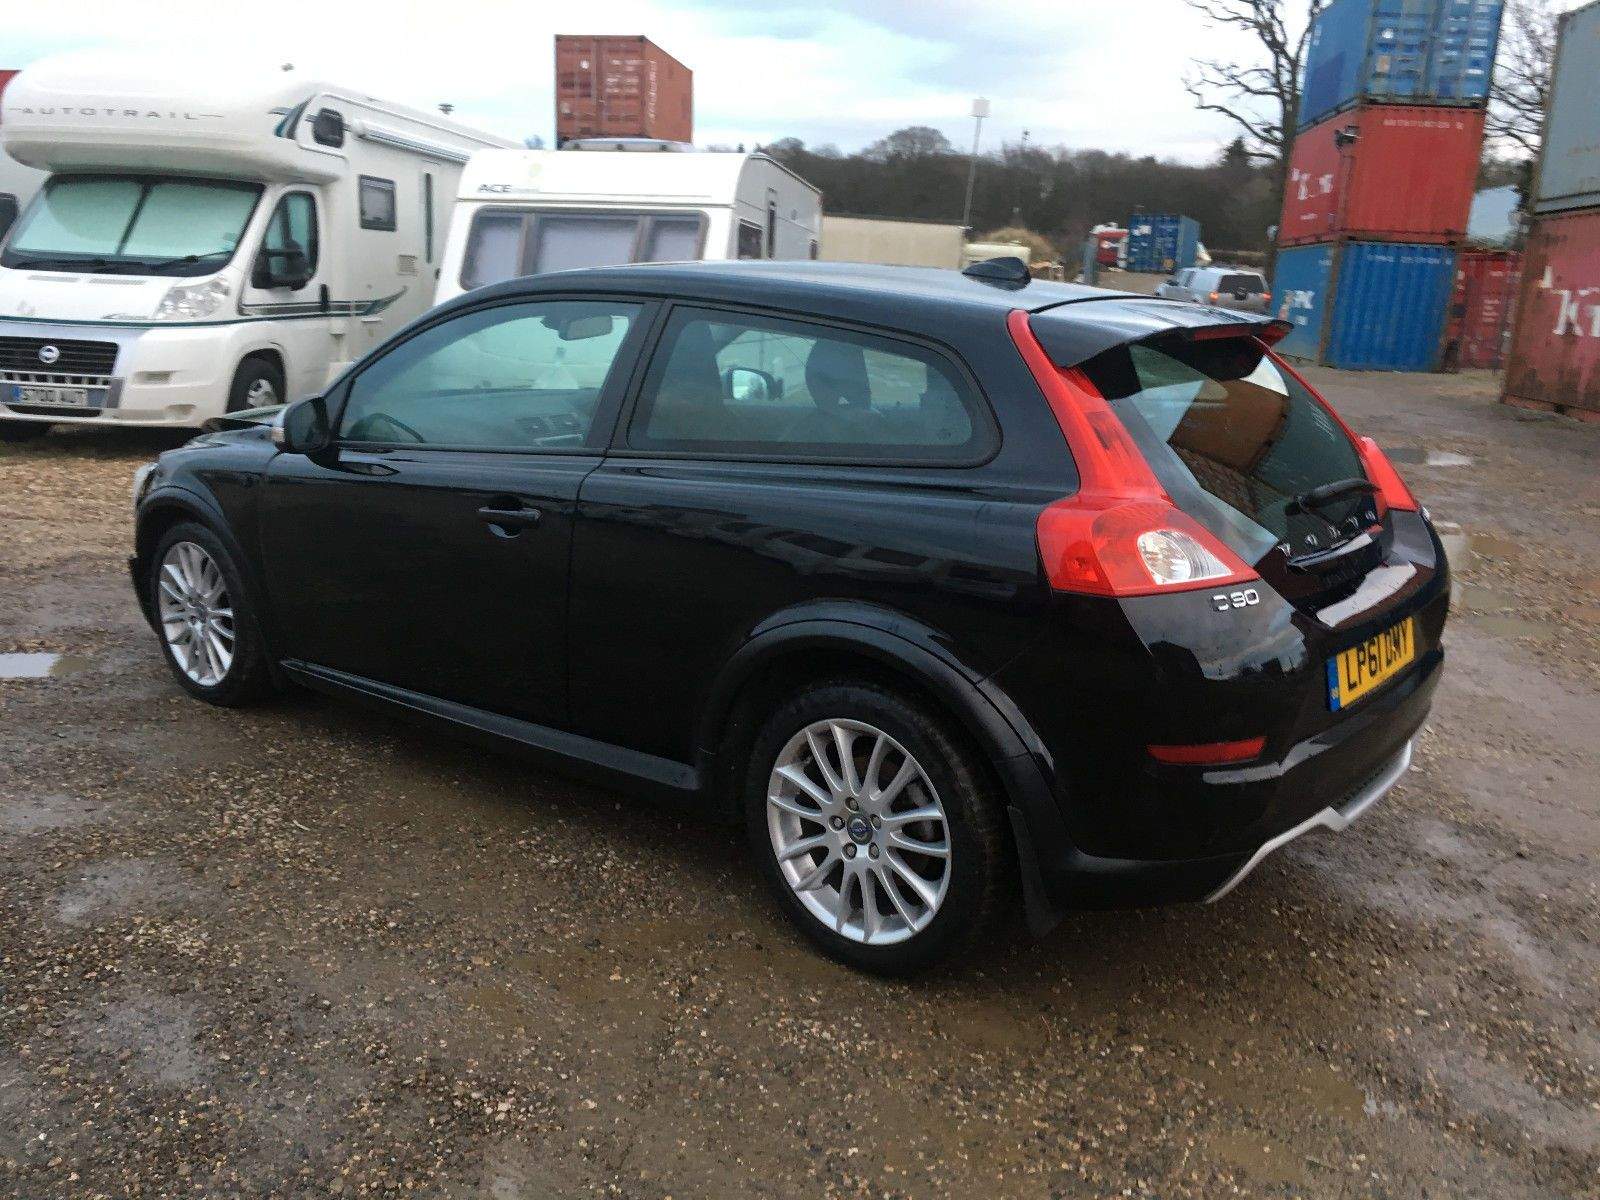 2012 volvo c30 coupe sel black mk1 facelift salvage damaged ...